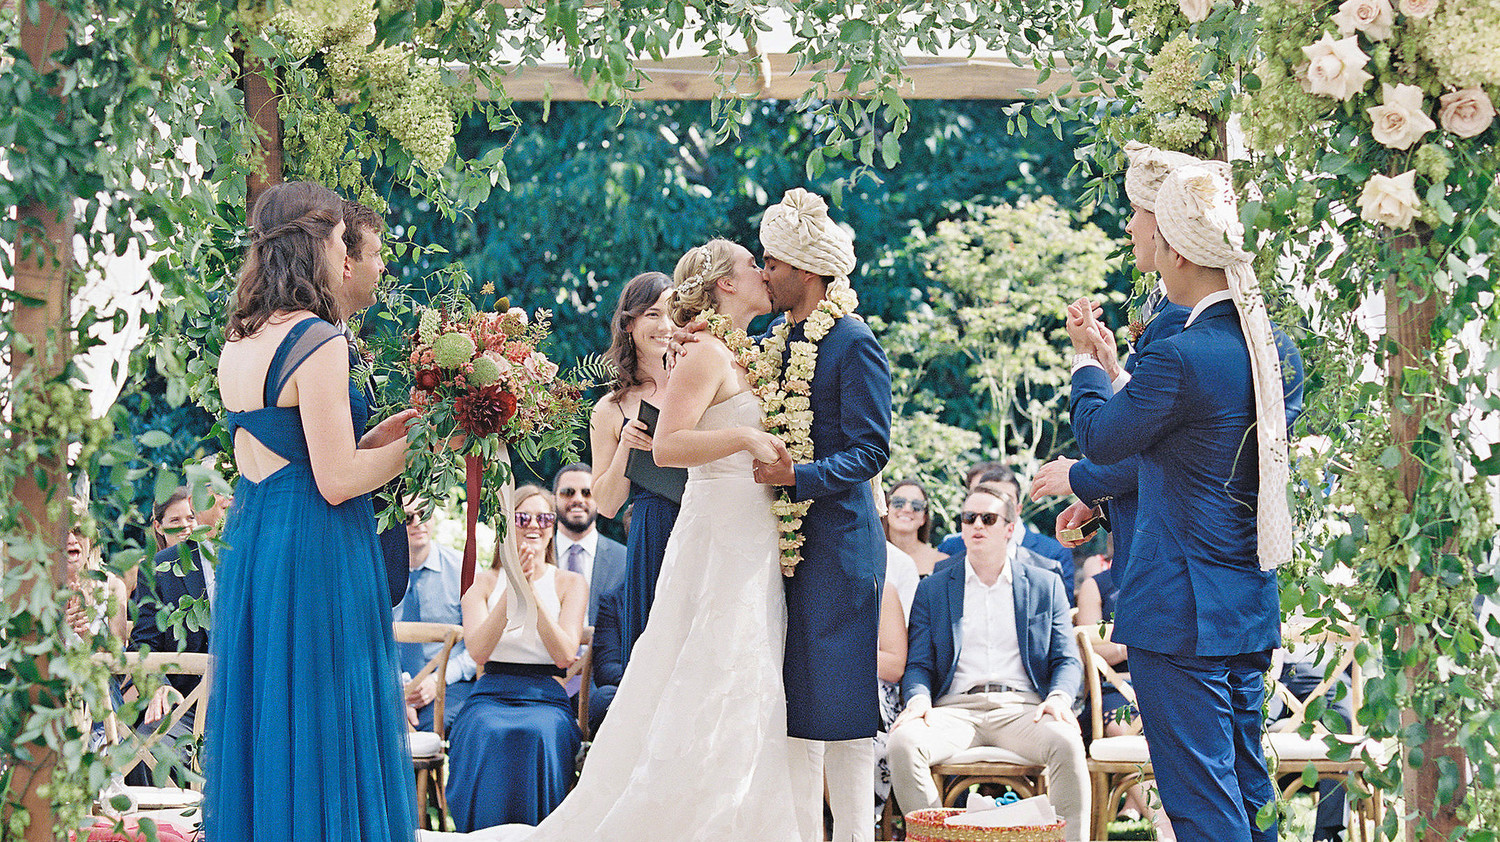 Martha Stewart Weddings: A Foodie Couple's Dinner Party-Inspired Wedding In Napa